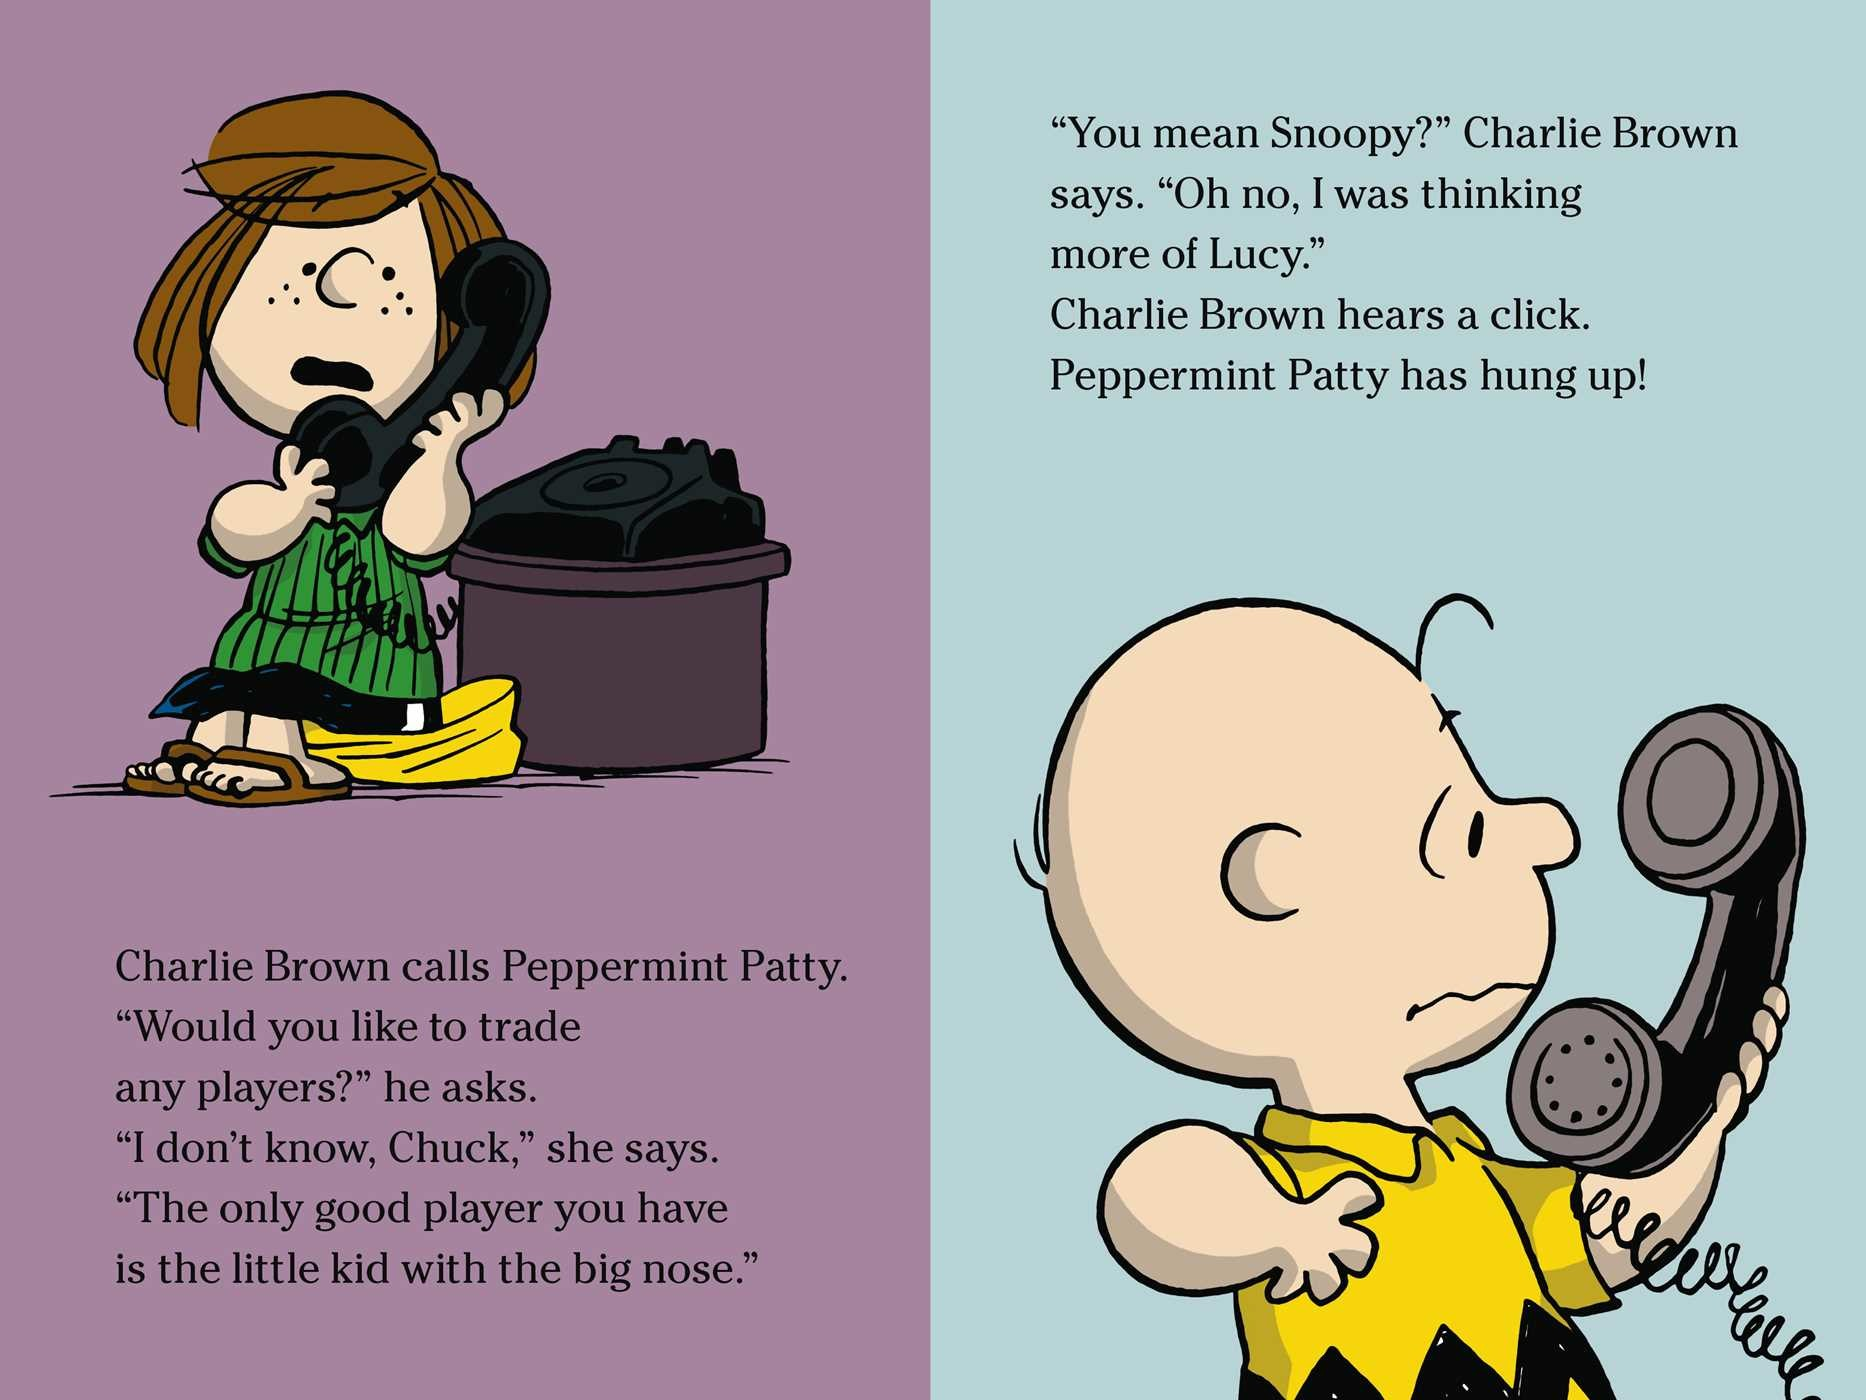 Make a trade charlie brown 9781481456876.in01